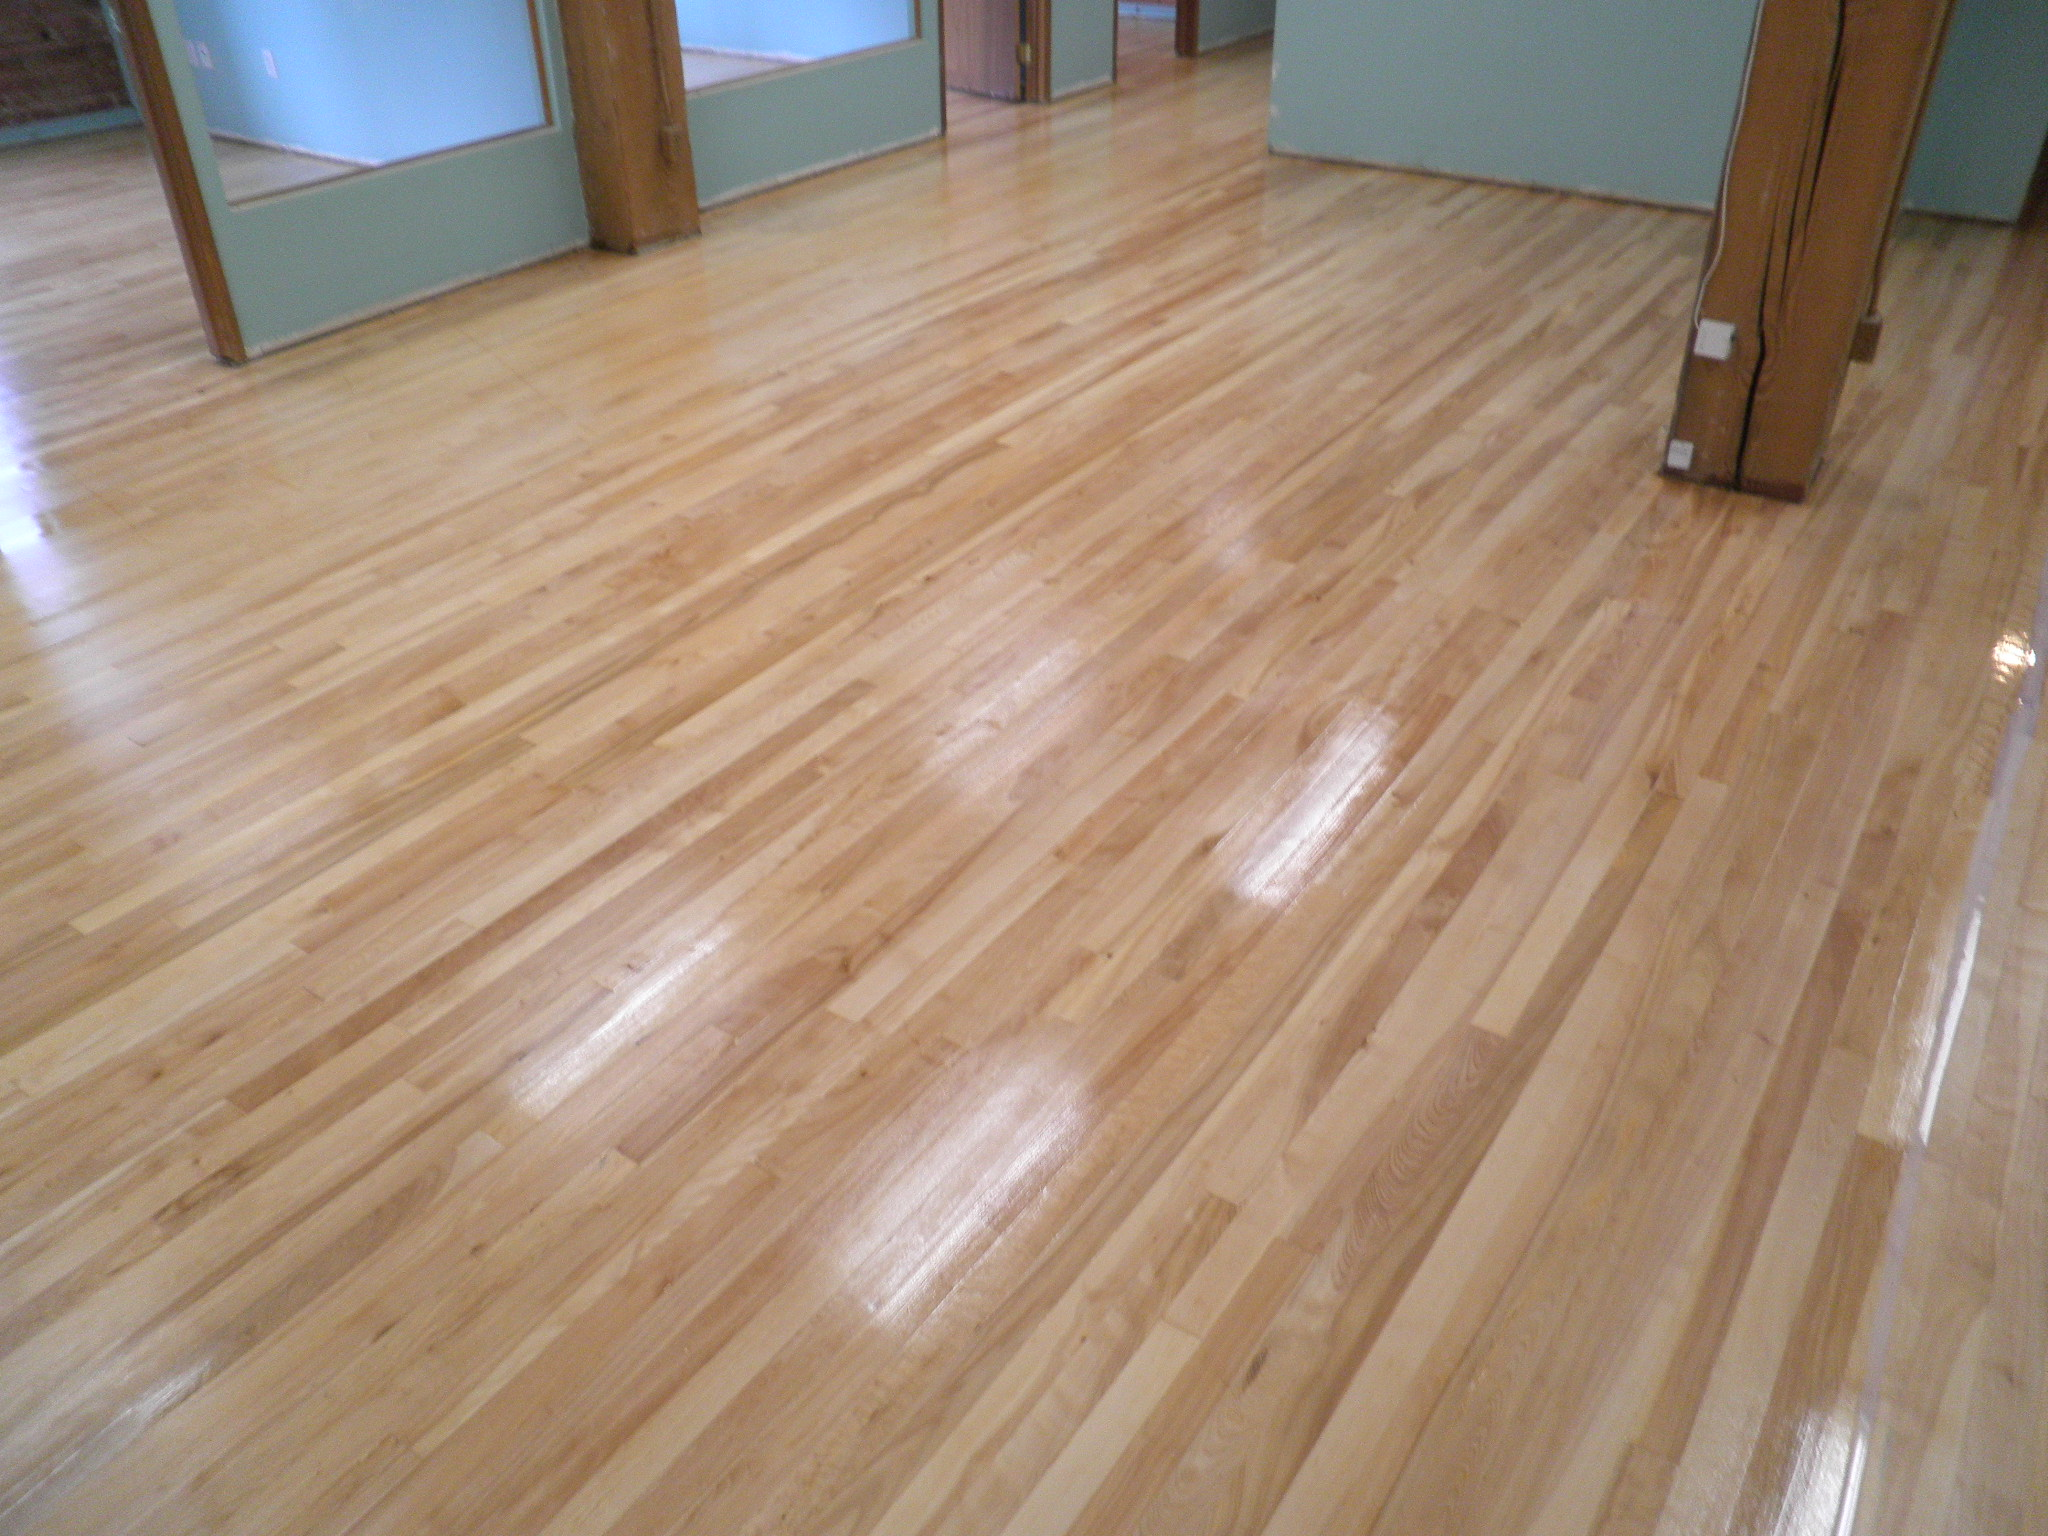 Refinishing wood floors excellent refinishing hardwood for Wood floor refinishing